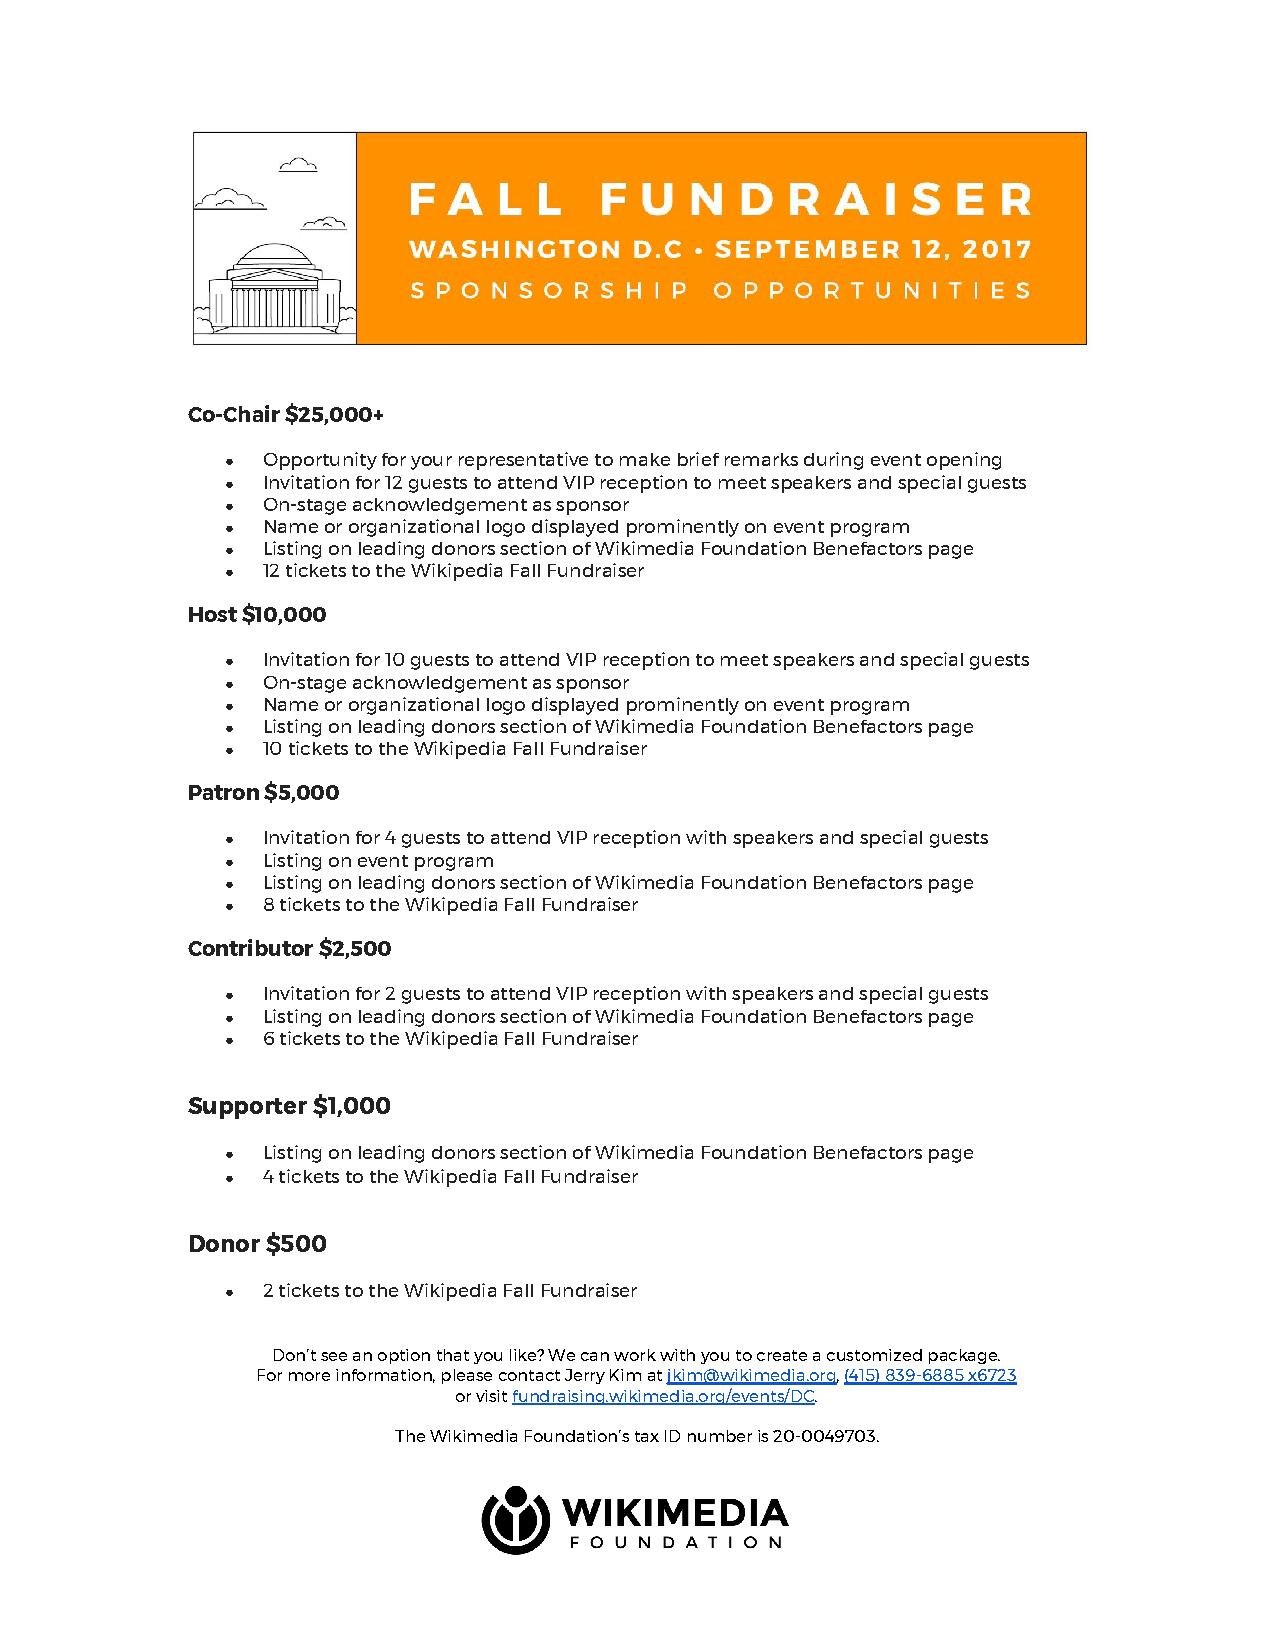 WMF Fall Fundraiser Sponsorship One Pager.pdf